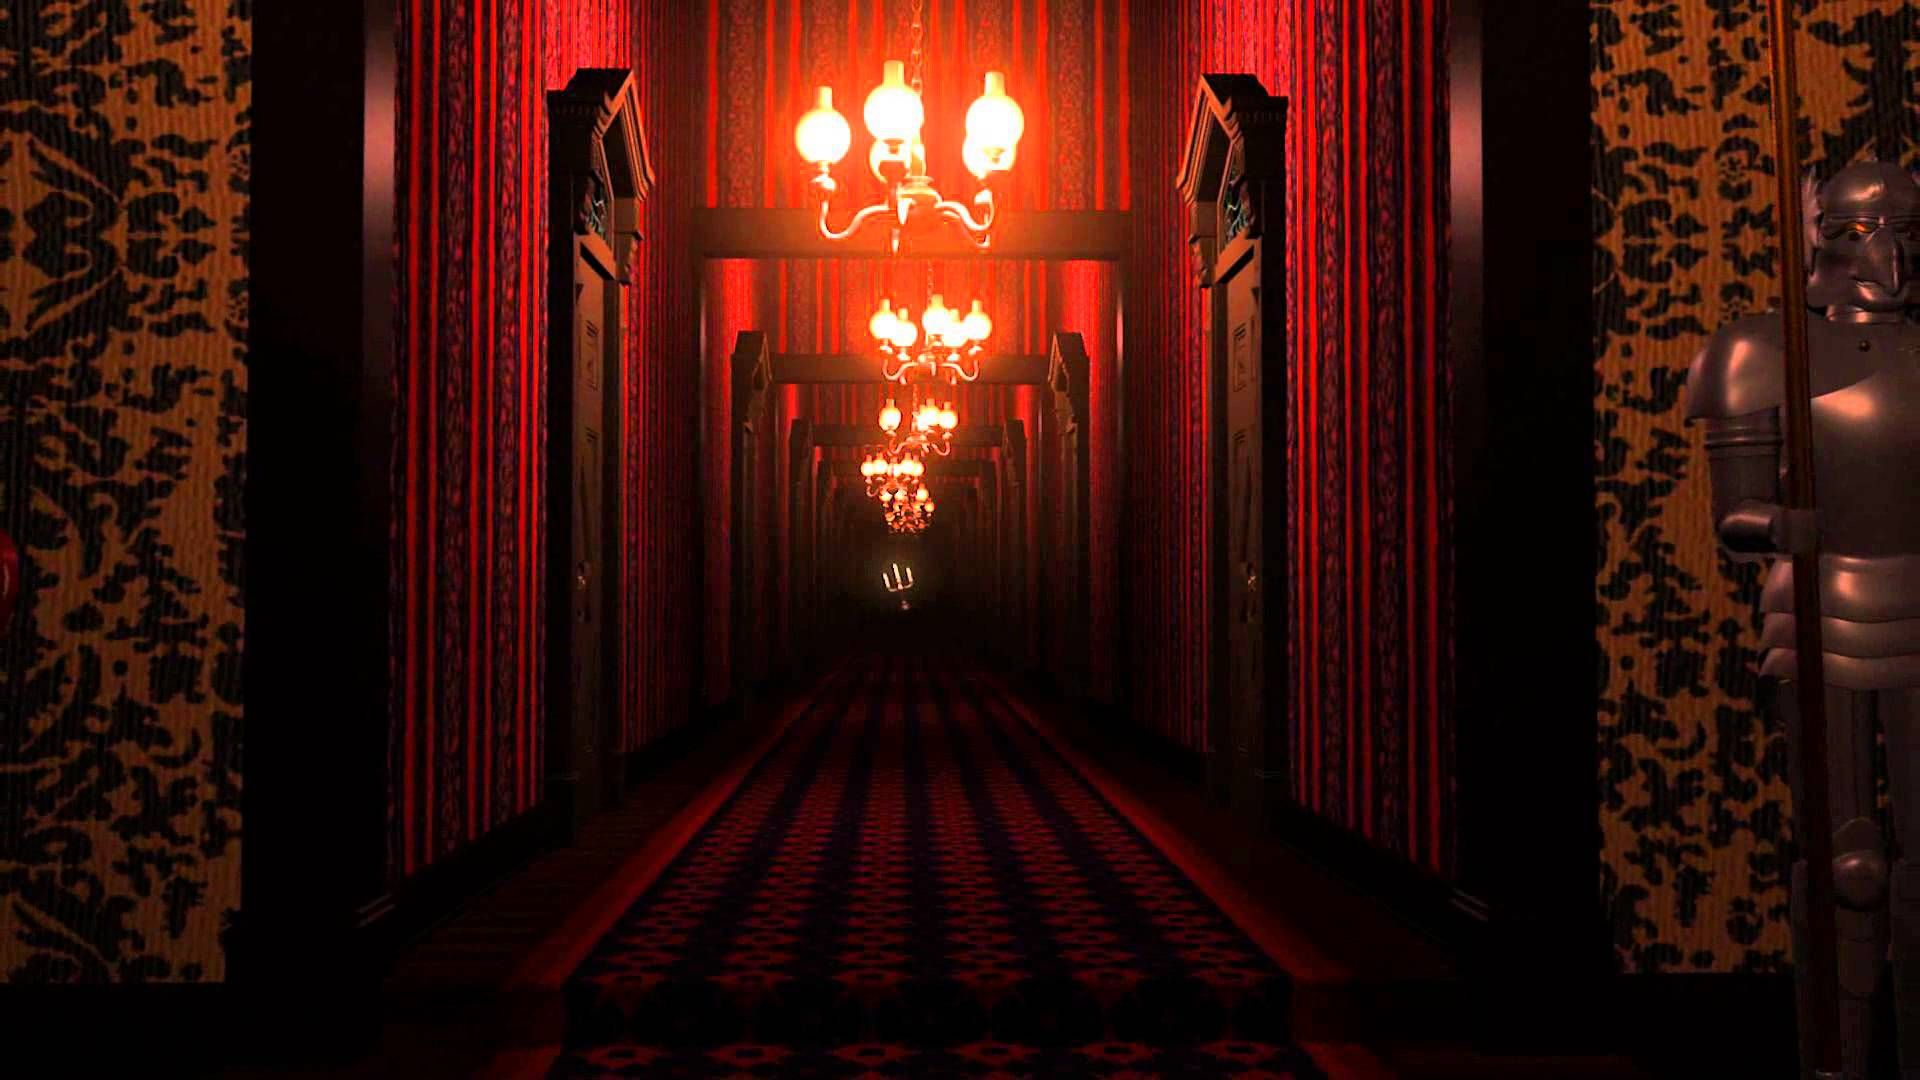 a short preview of the endless hallway sequence from my digital